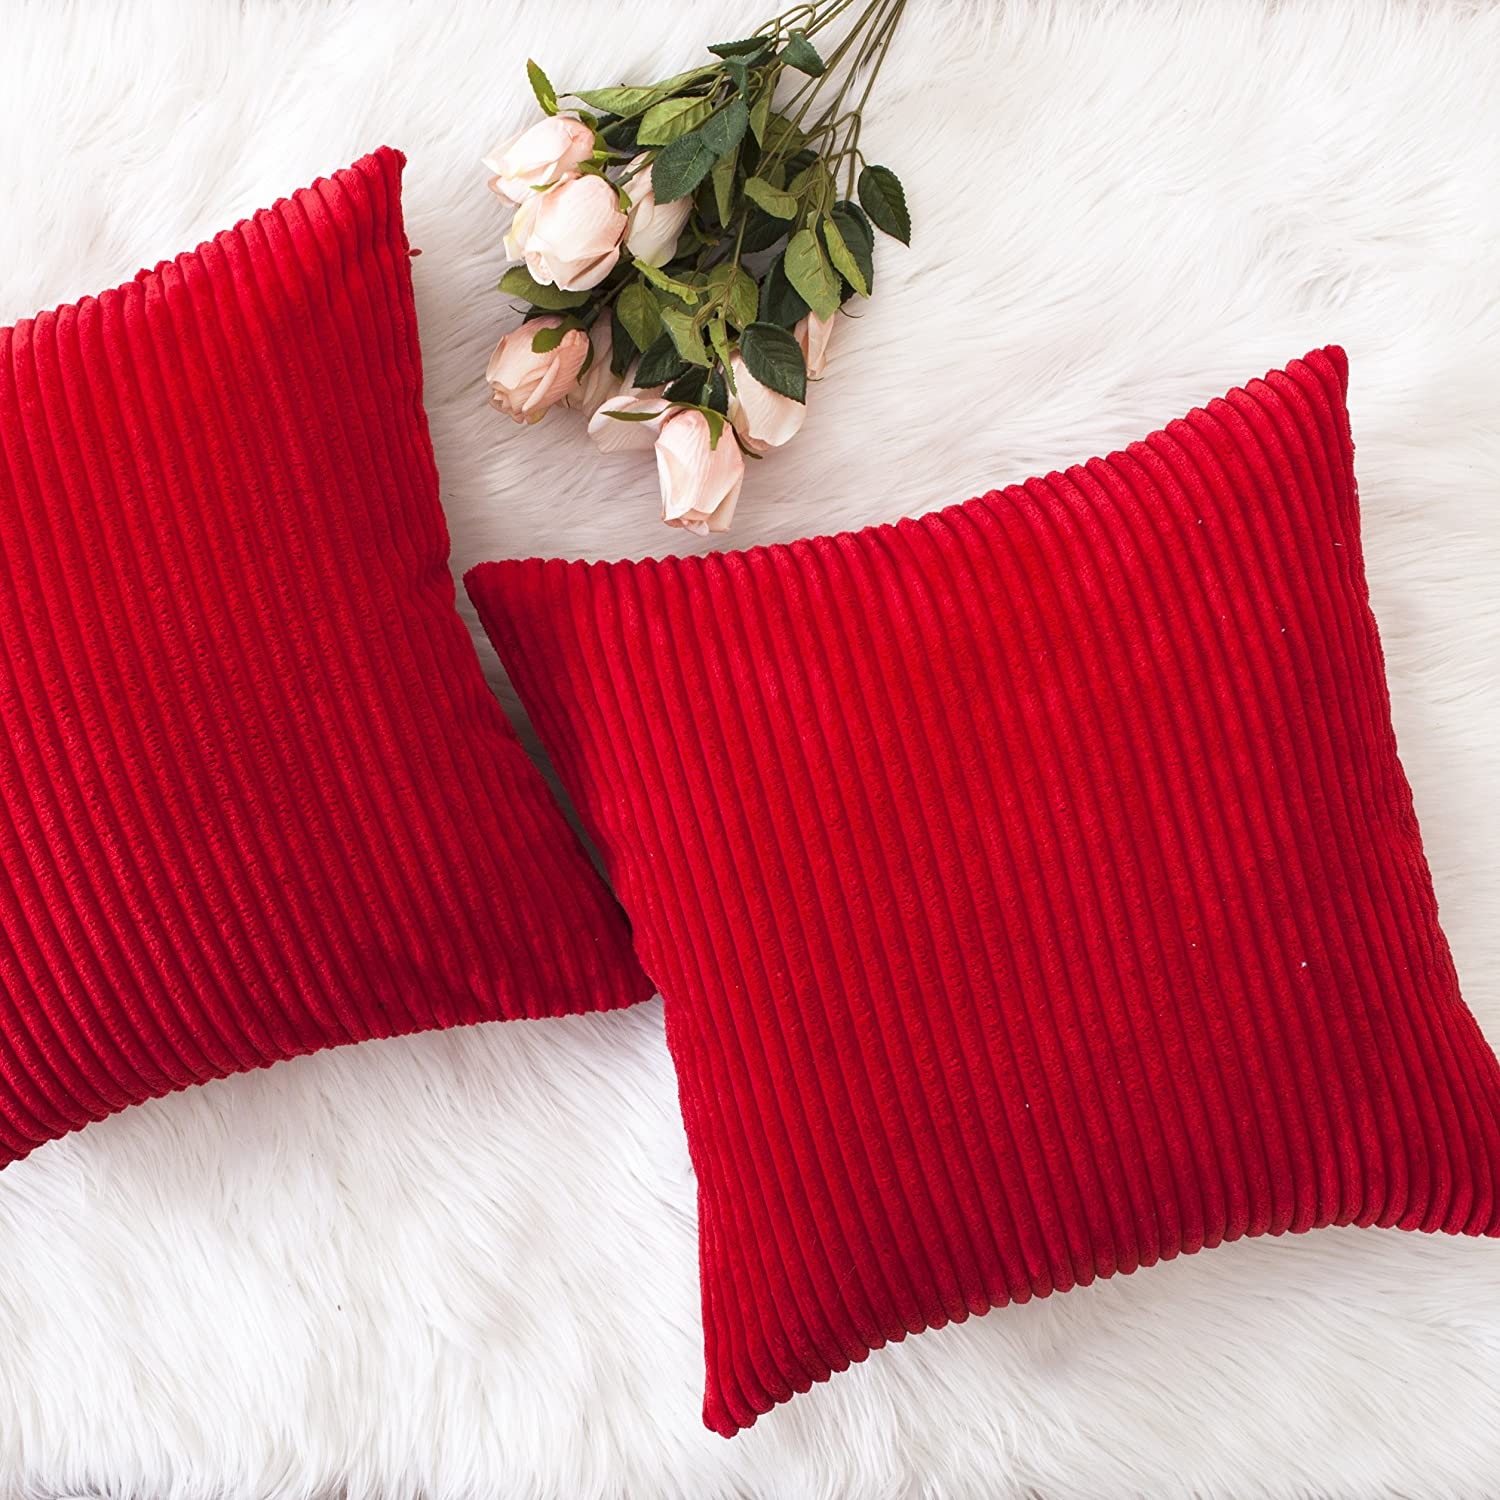 HOME BRILLIANT Christmas Decorative Throw Pillow Covers Striped Velvet Corduroy Plush Cushion Cover Set for Holiday